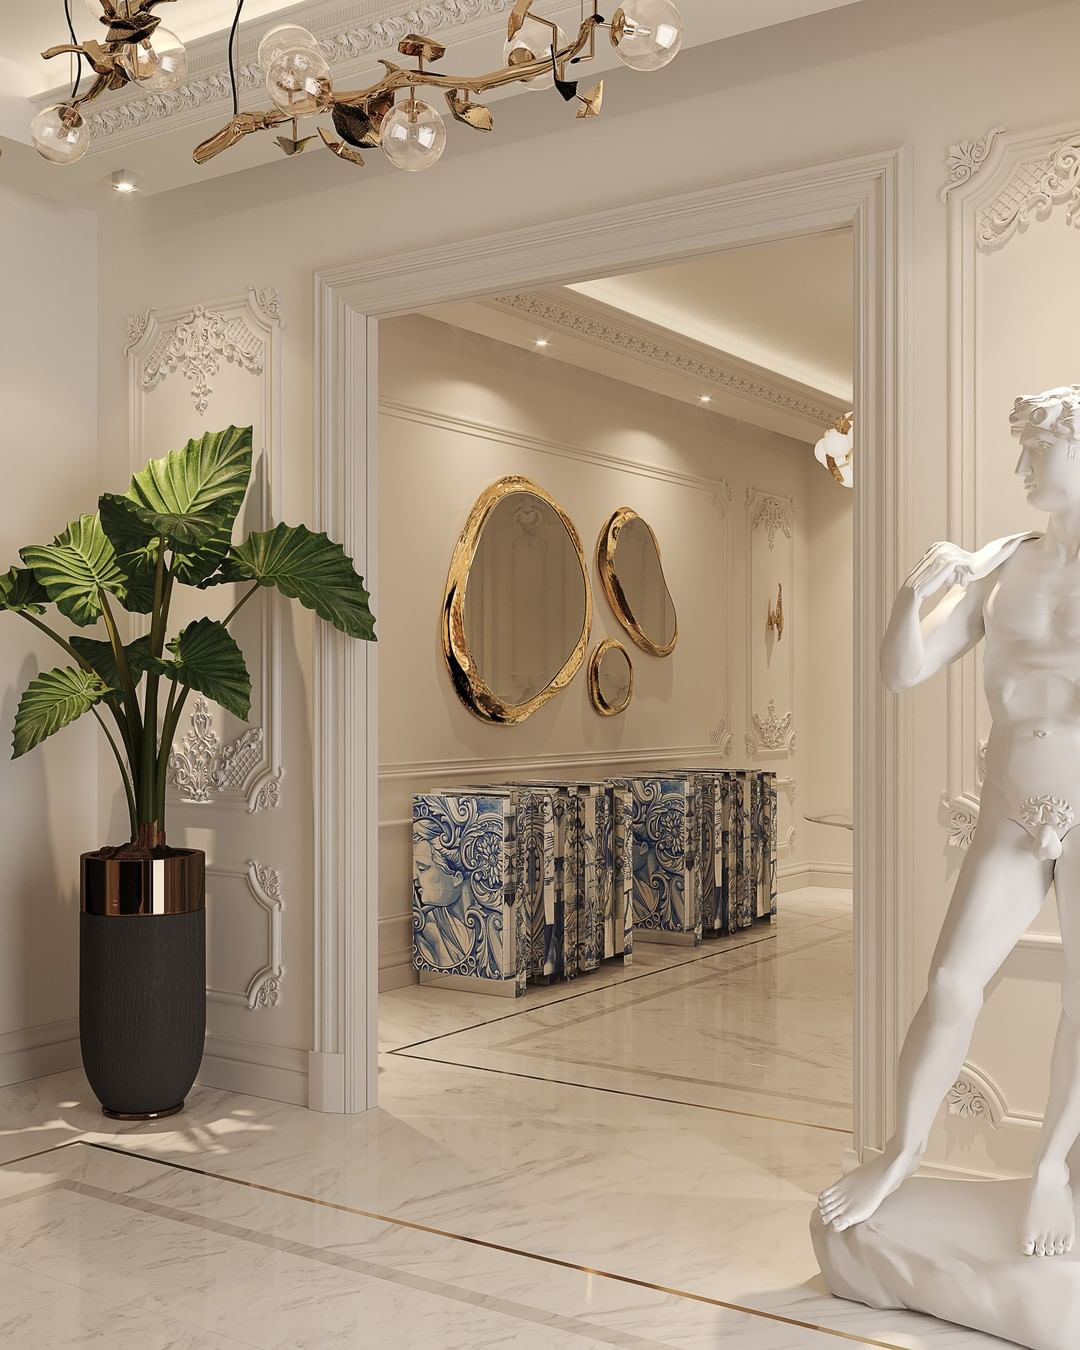 Hallway Ideas To Give Your Guests A Warm Welcome hallway ideas Hallway Ideas To Give Your Guests A Warm Welcome hallway ideas give your guests warm welcome 2